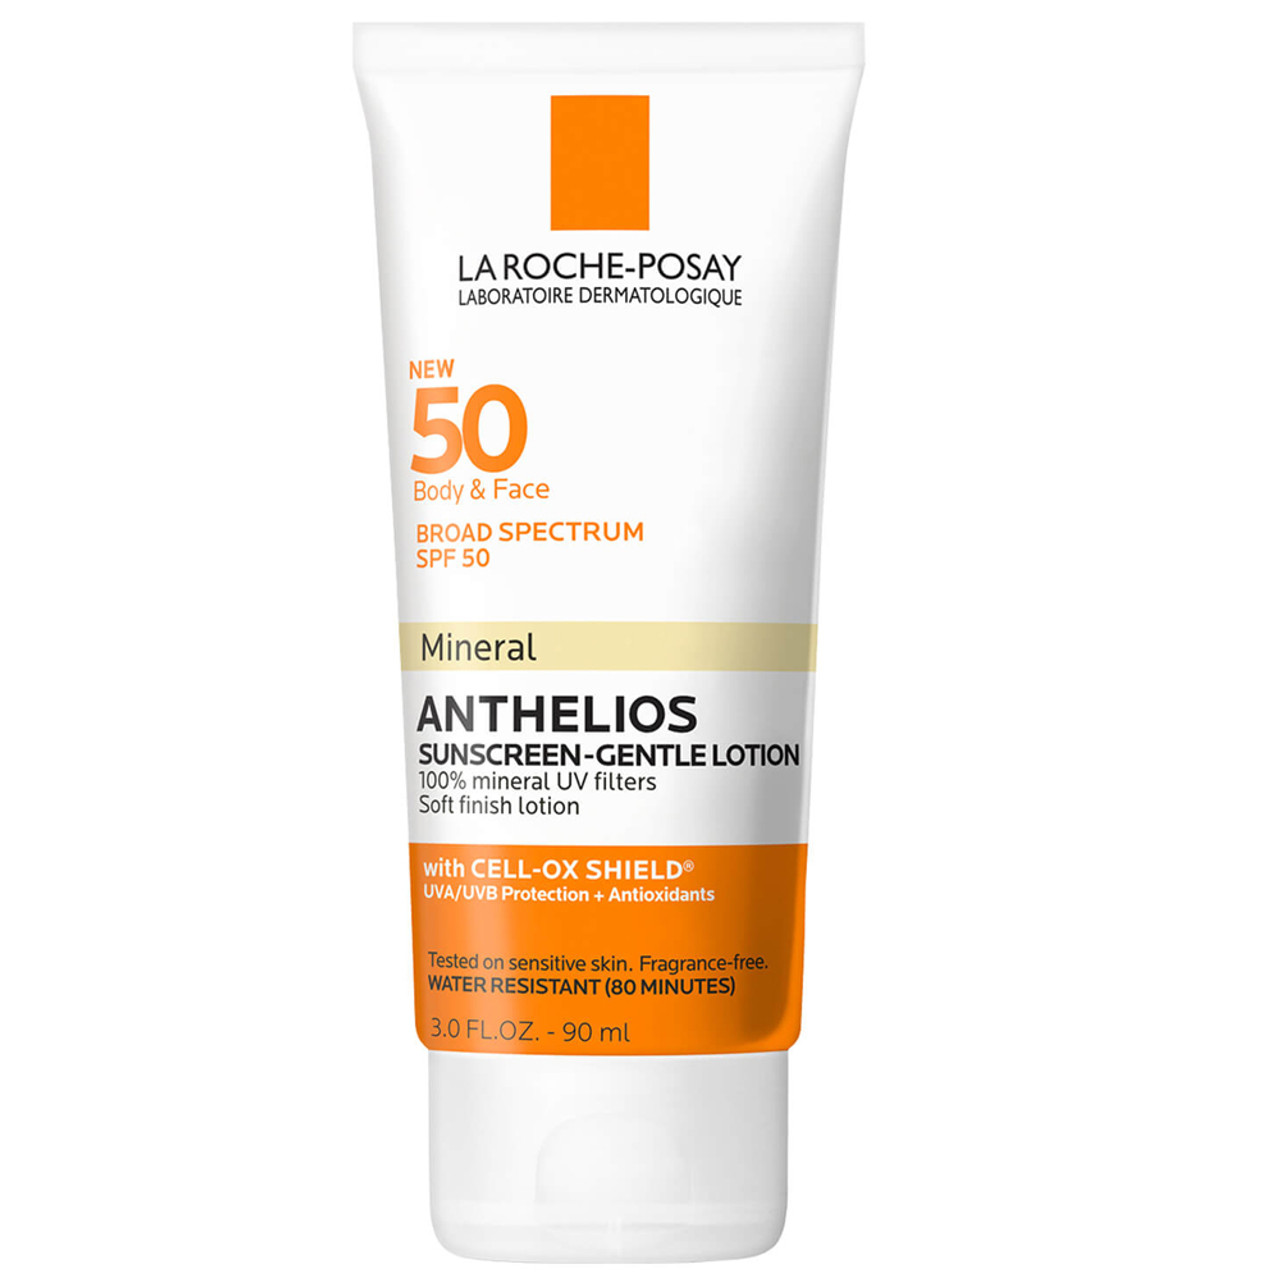 La Roche Posay Anthelios SPF 50 Mineral Sunscreen - Gentle Lotion